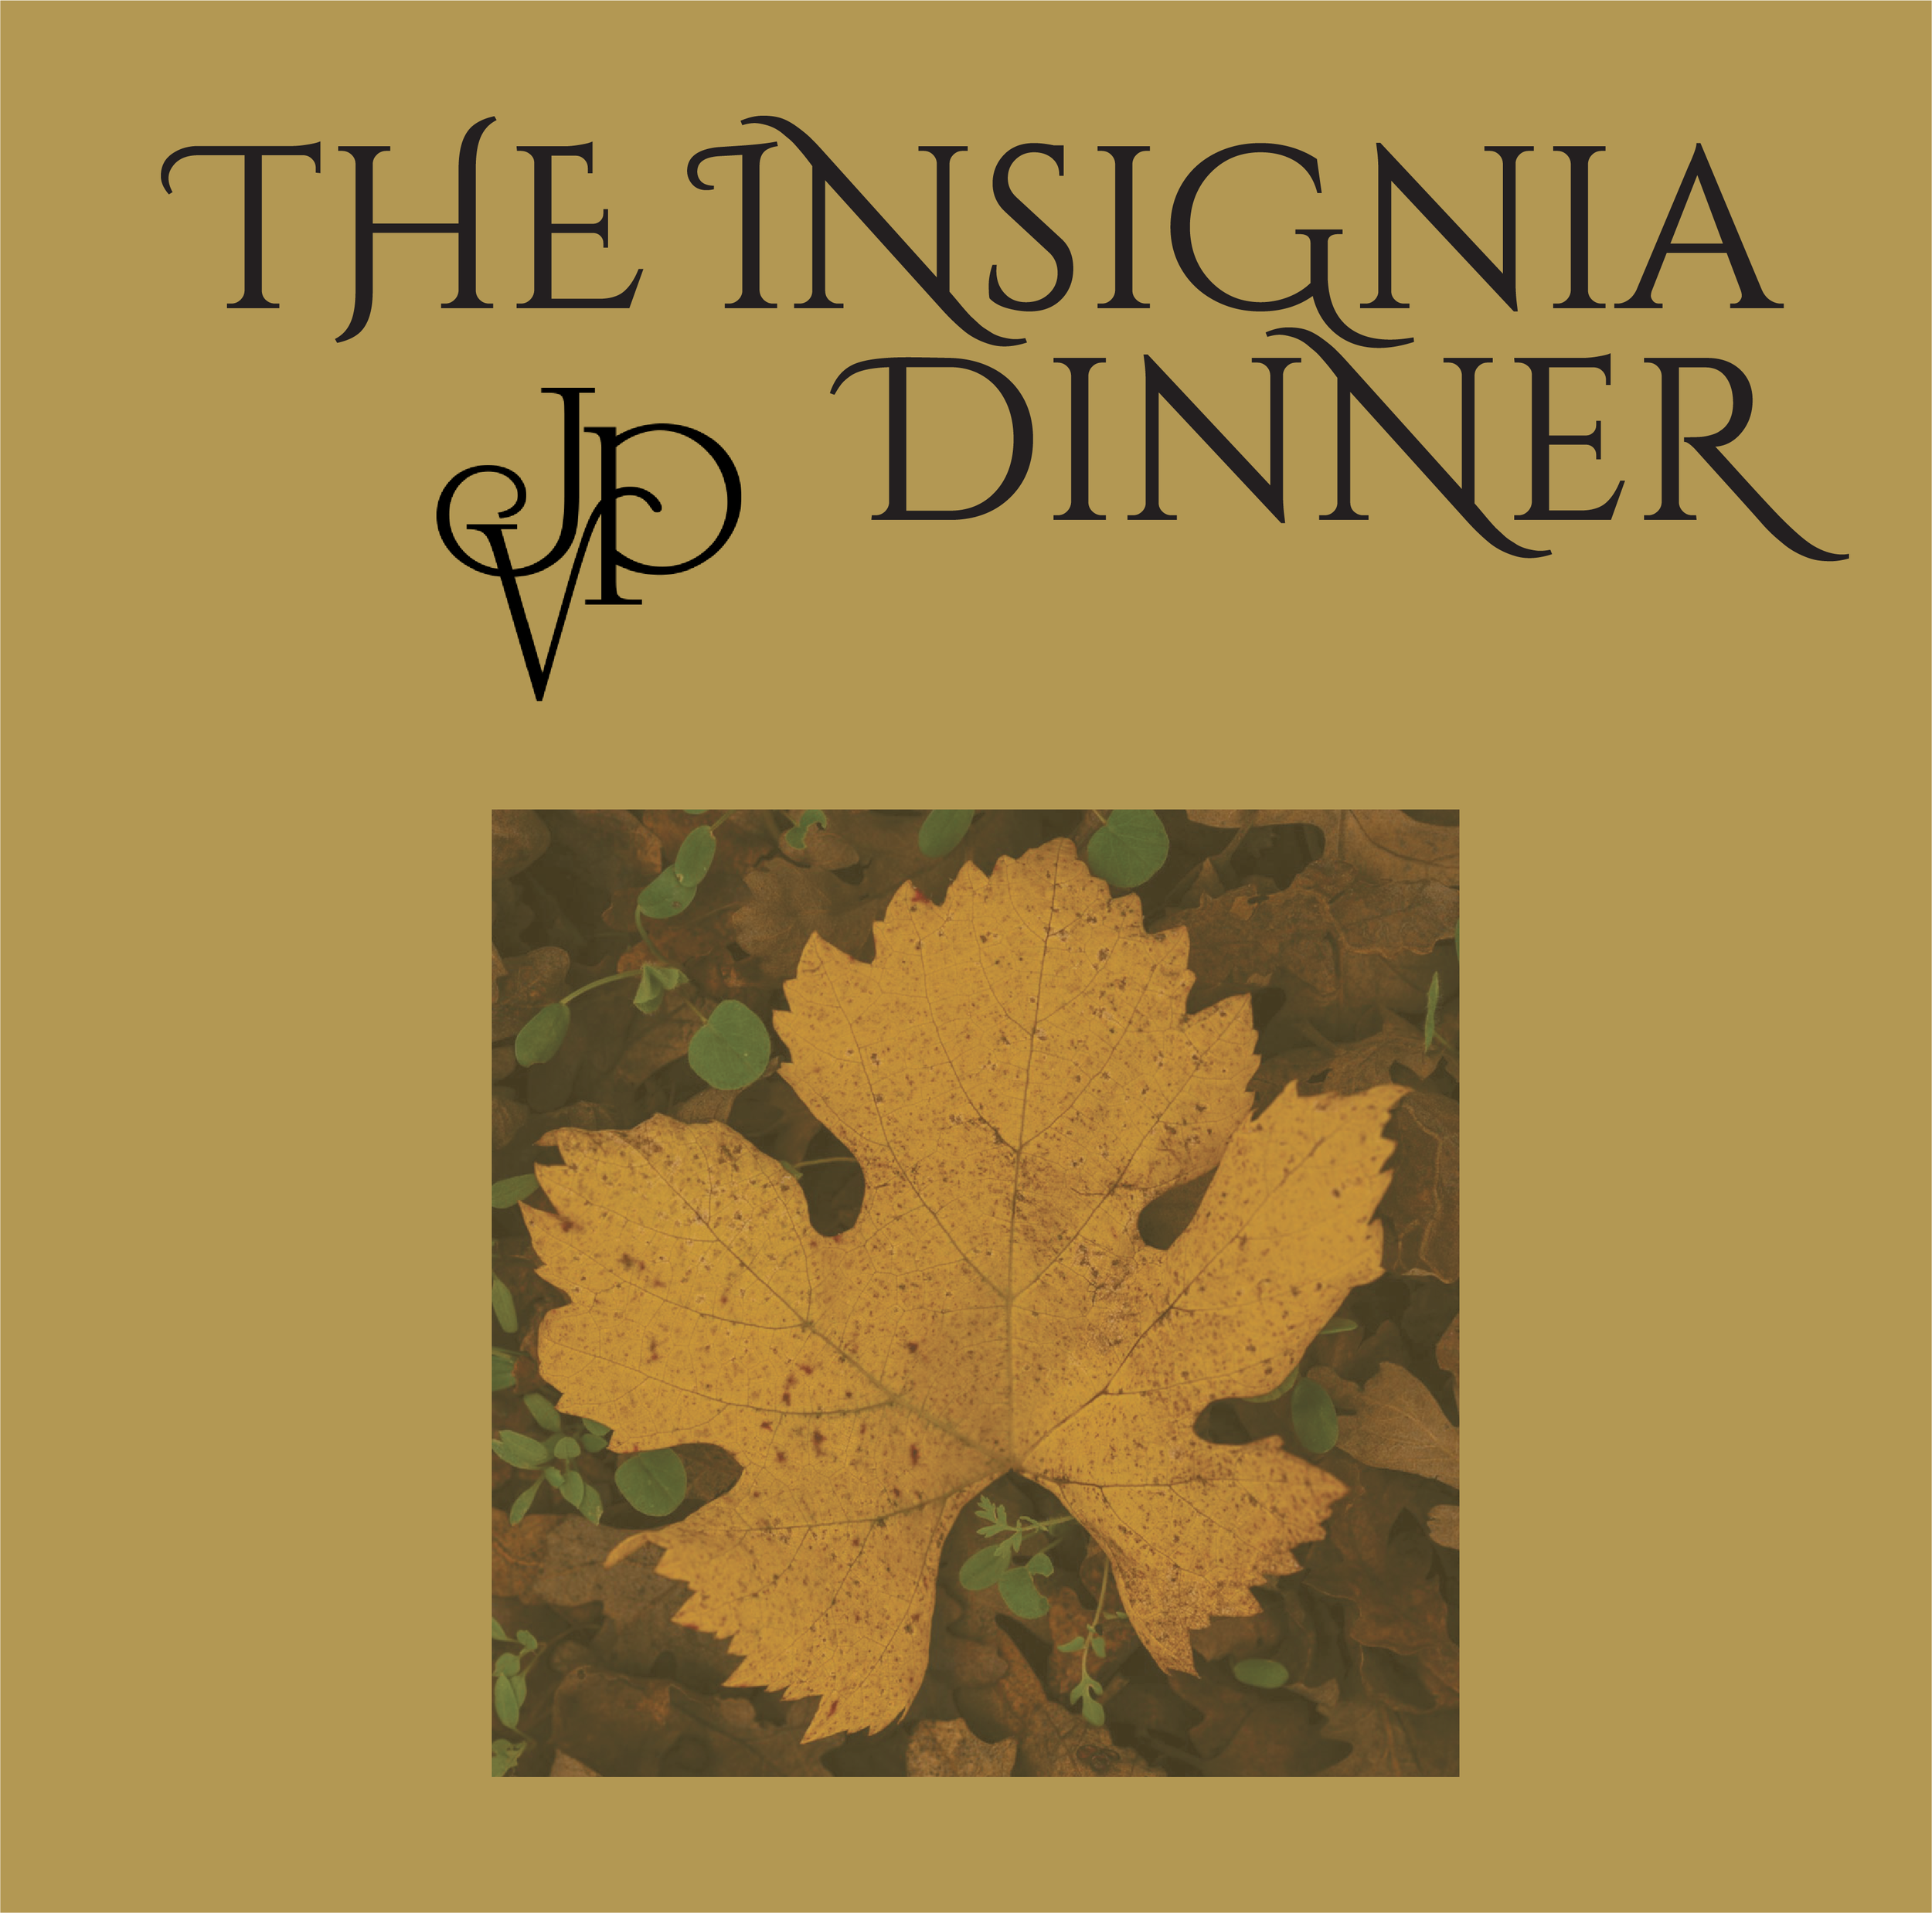 The Insignia Dinner | STARS of Cabernet The Peninsula Beverly Hills November 13, 2019 5:30 PM